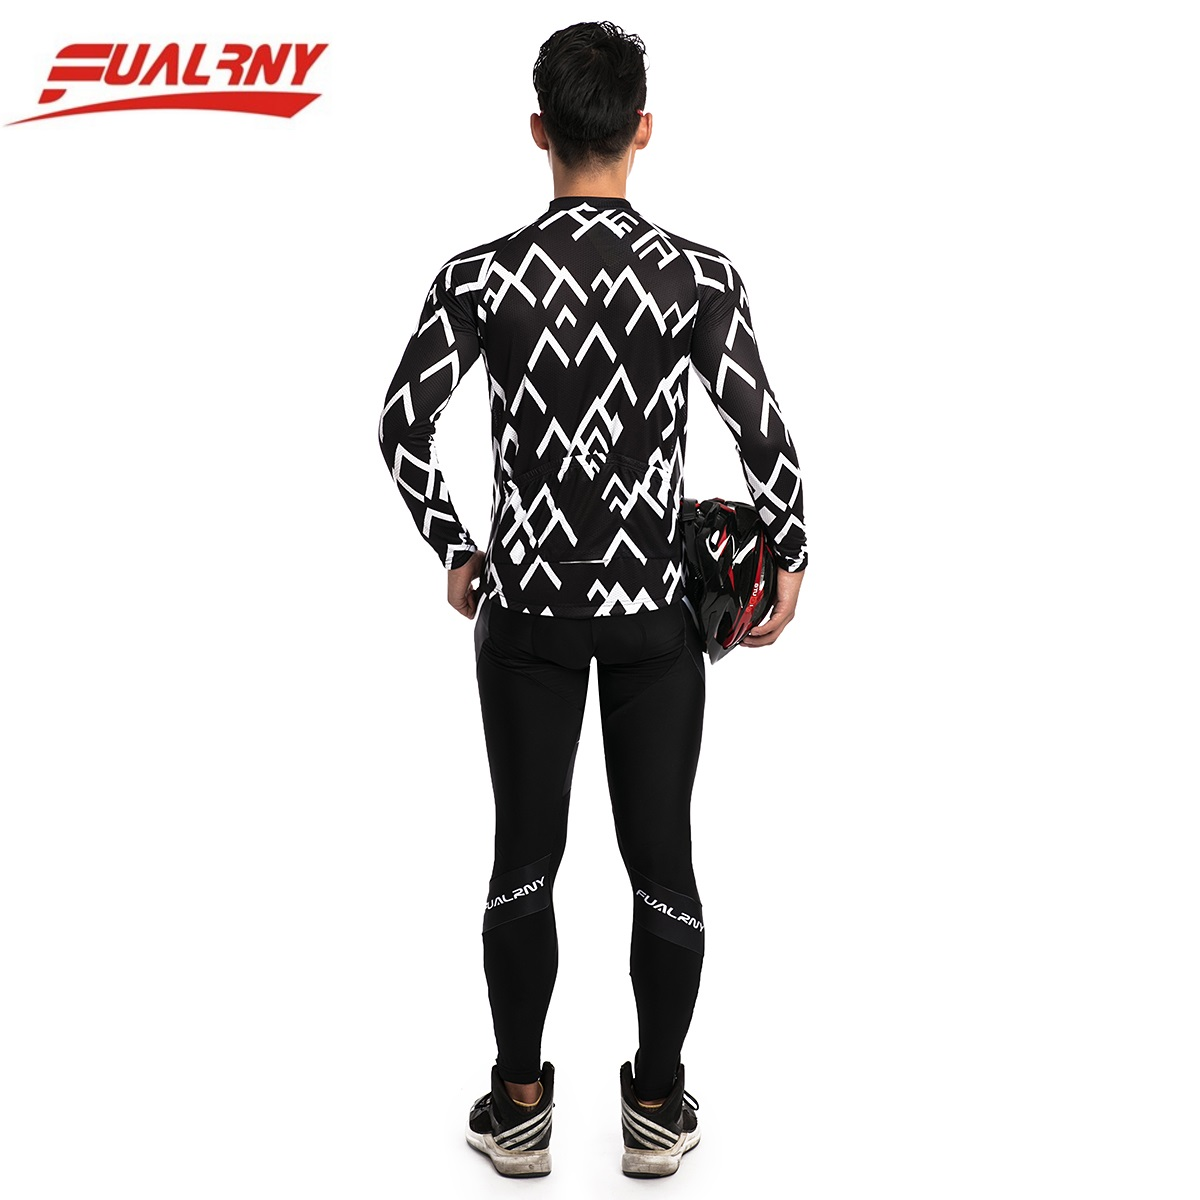 2018 Team FUALRNY Long sleeve Ropa Ciclismo Cycling Jersey sets Mountian Bicycle Clothing/MTB Bike Clothes For Man White stripe